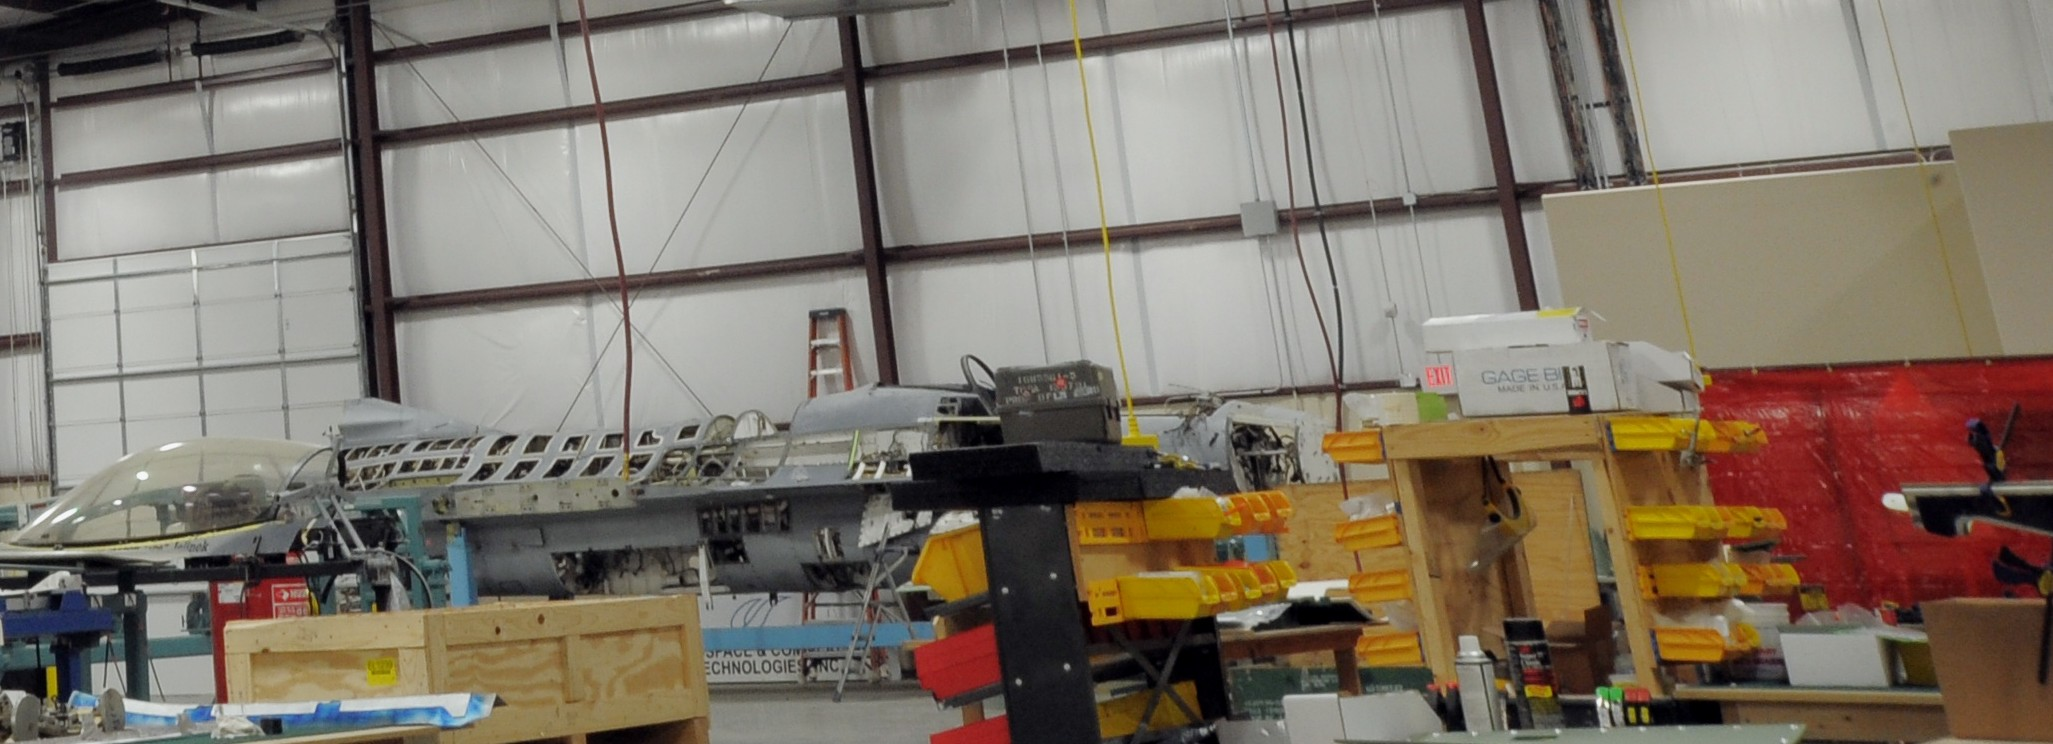 Aerospace Commercial Technology Industrial Construction Interior